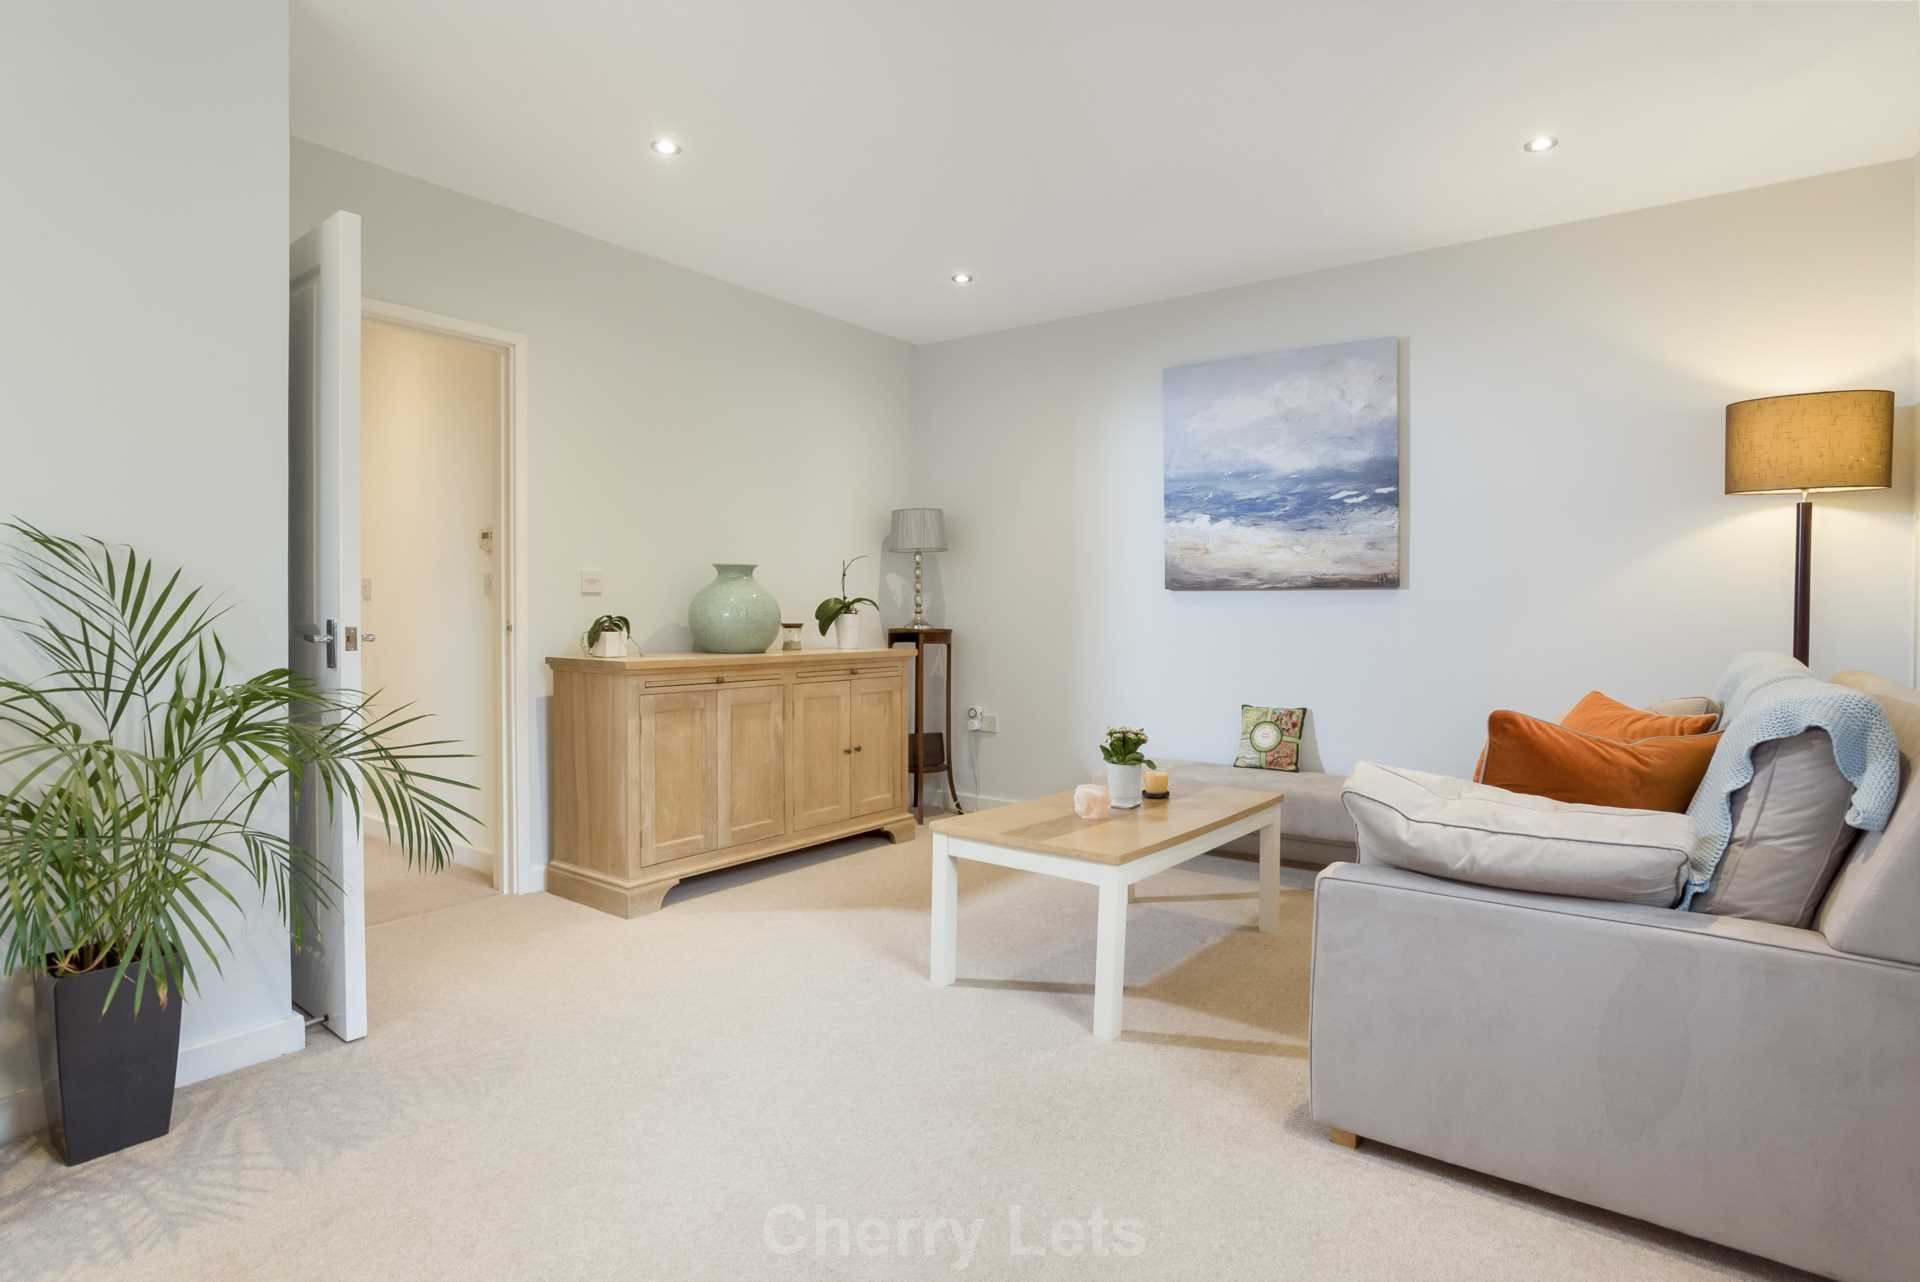 2 bed apartment to rent in Astrop Grange, Kings Sutton, OX17  - Property Image 4